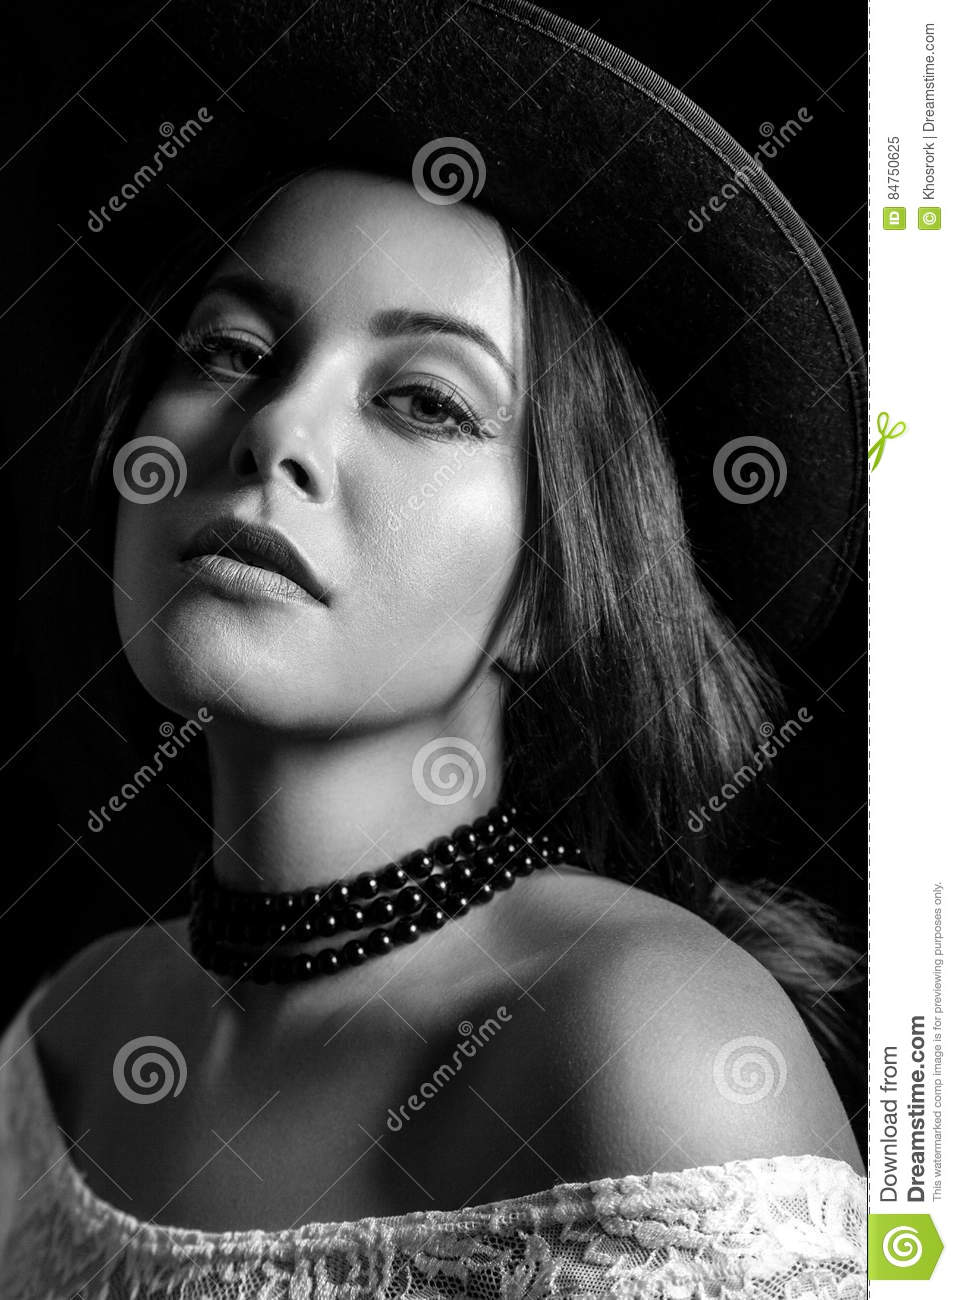 Classic retro beauty portrait black and white photography